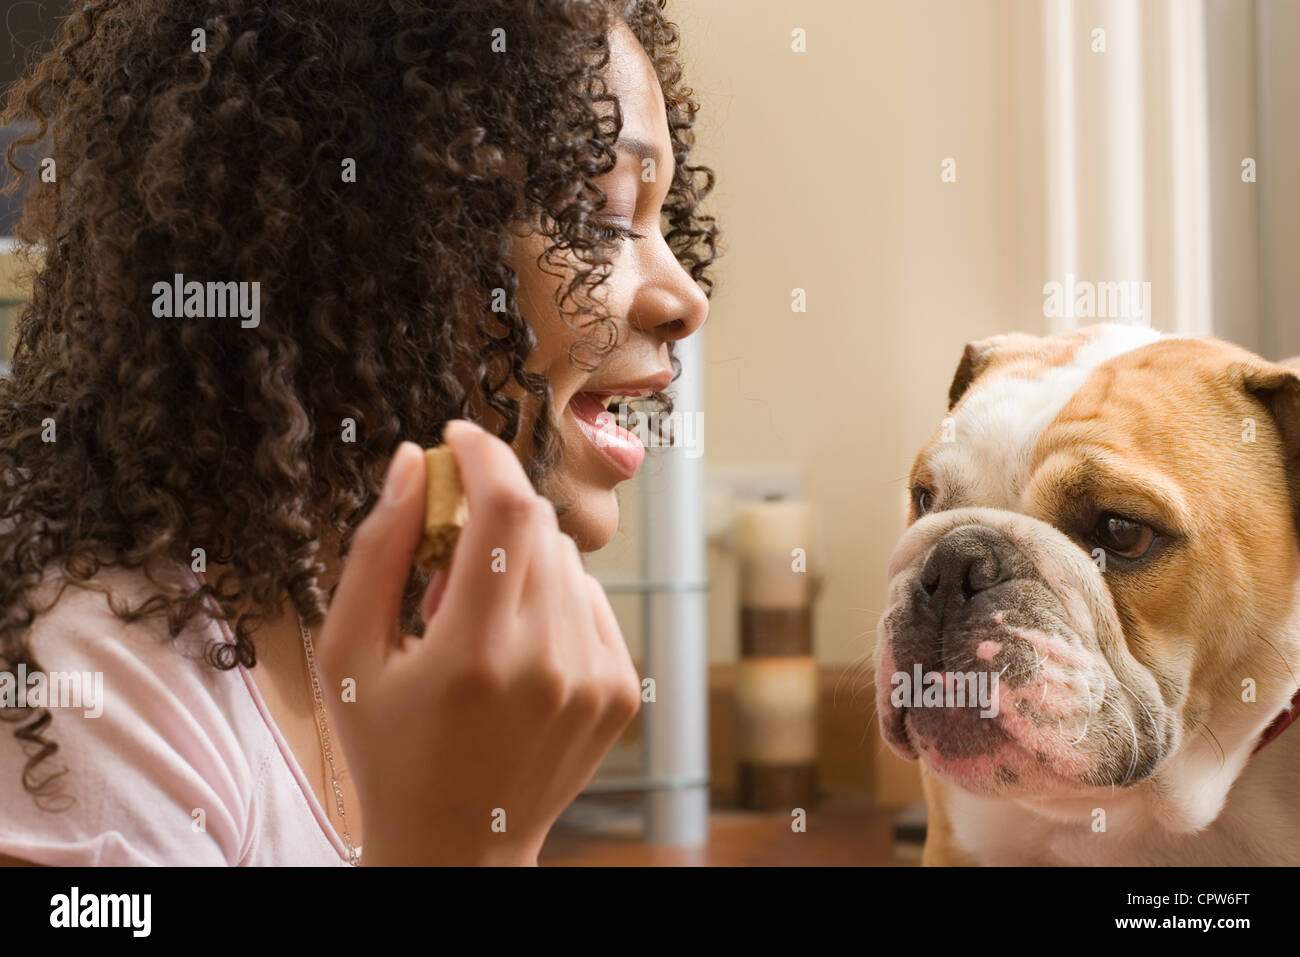 Young woman with treat in-hand speaking to her puppy dog - Stock Image